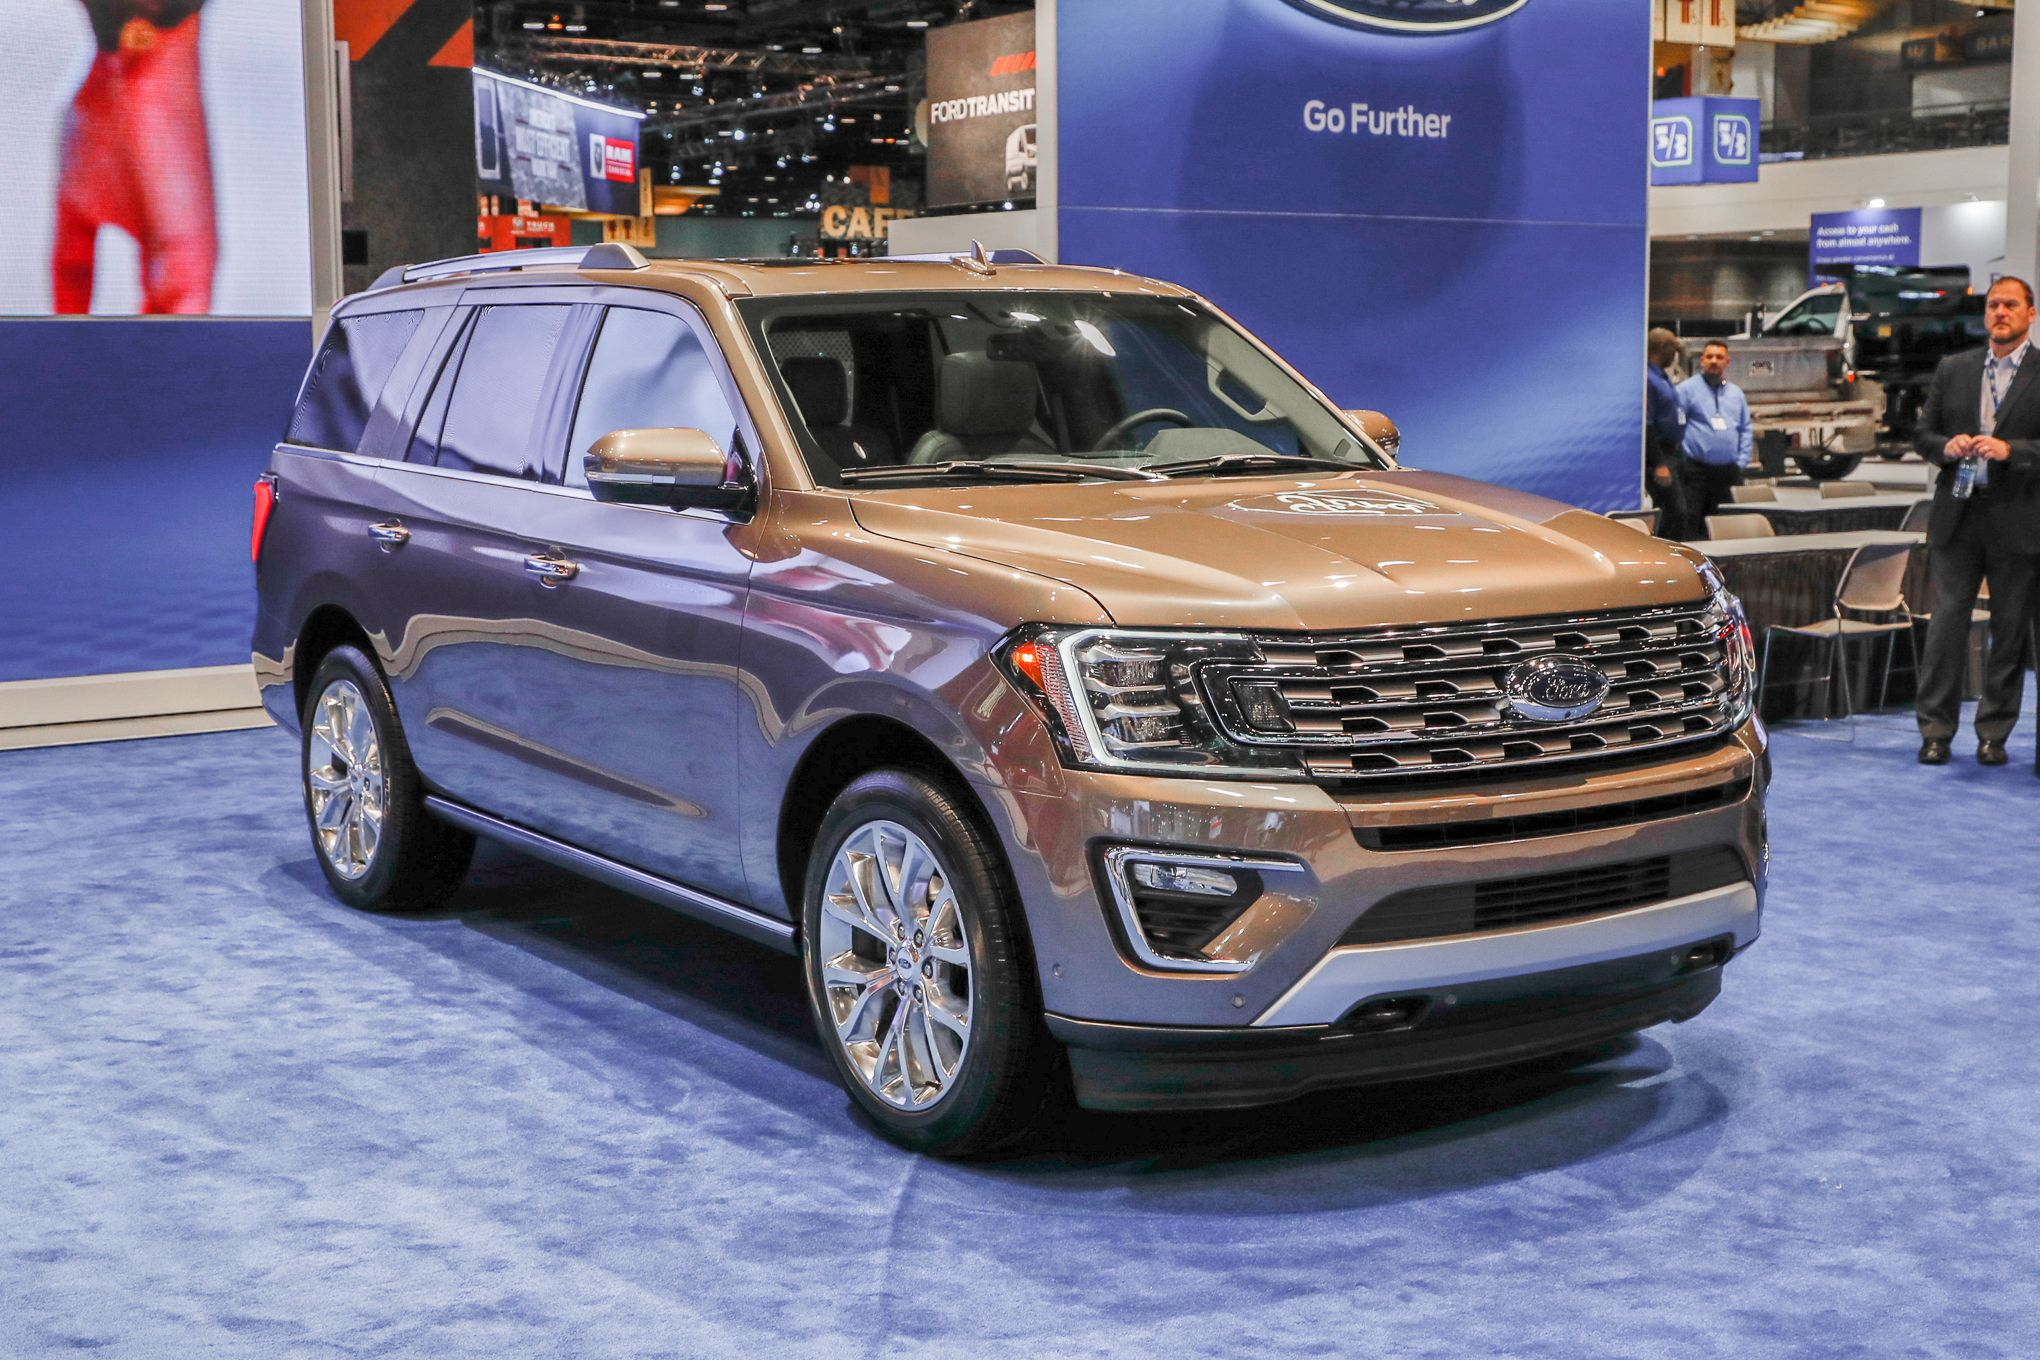 Top 10 Car Companies in the World 2018 | Pinterest | Ford expedition ...